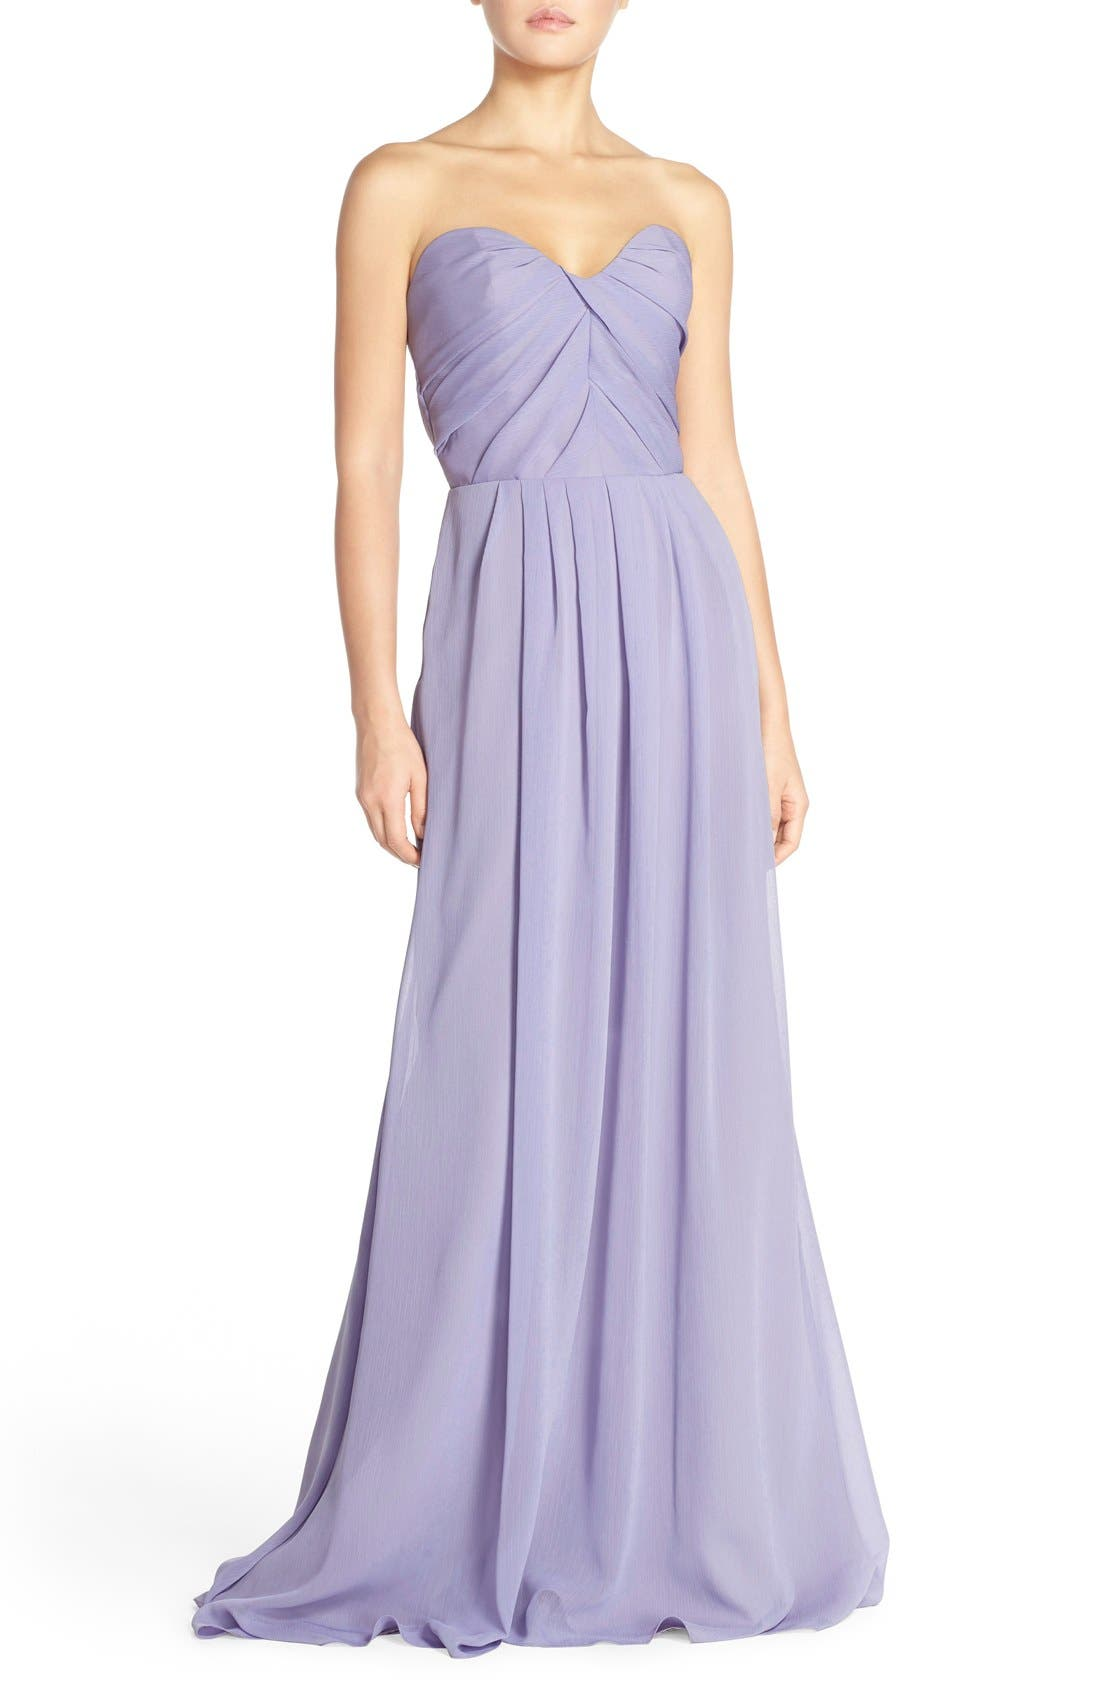 Main Image - Hayley Paige Occasions Strapless Crinkle Chiffon A-Line Gown